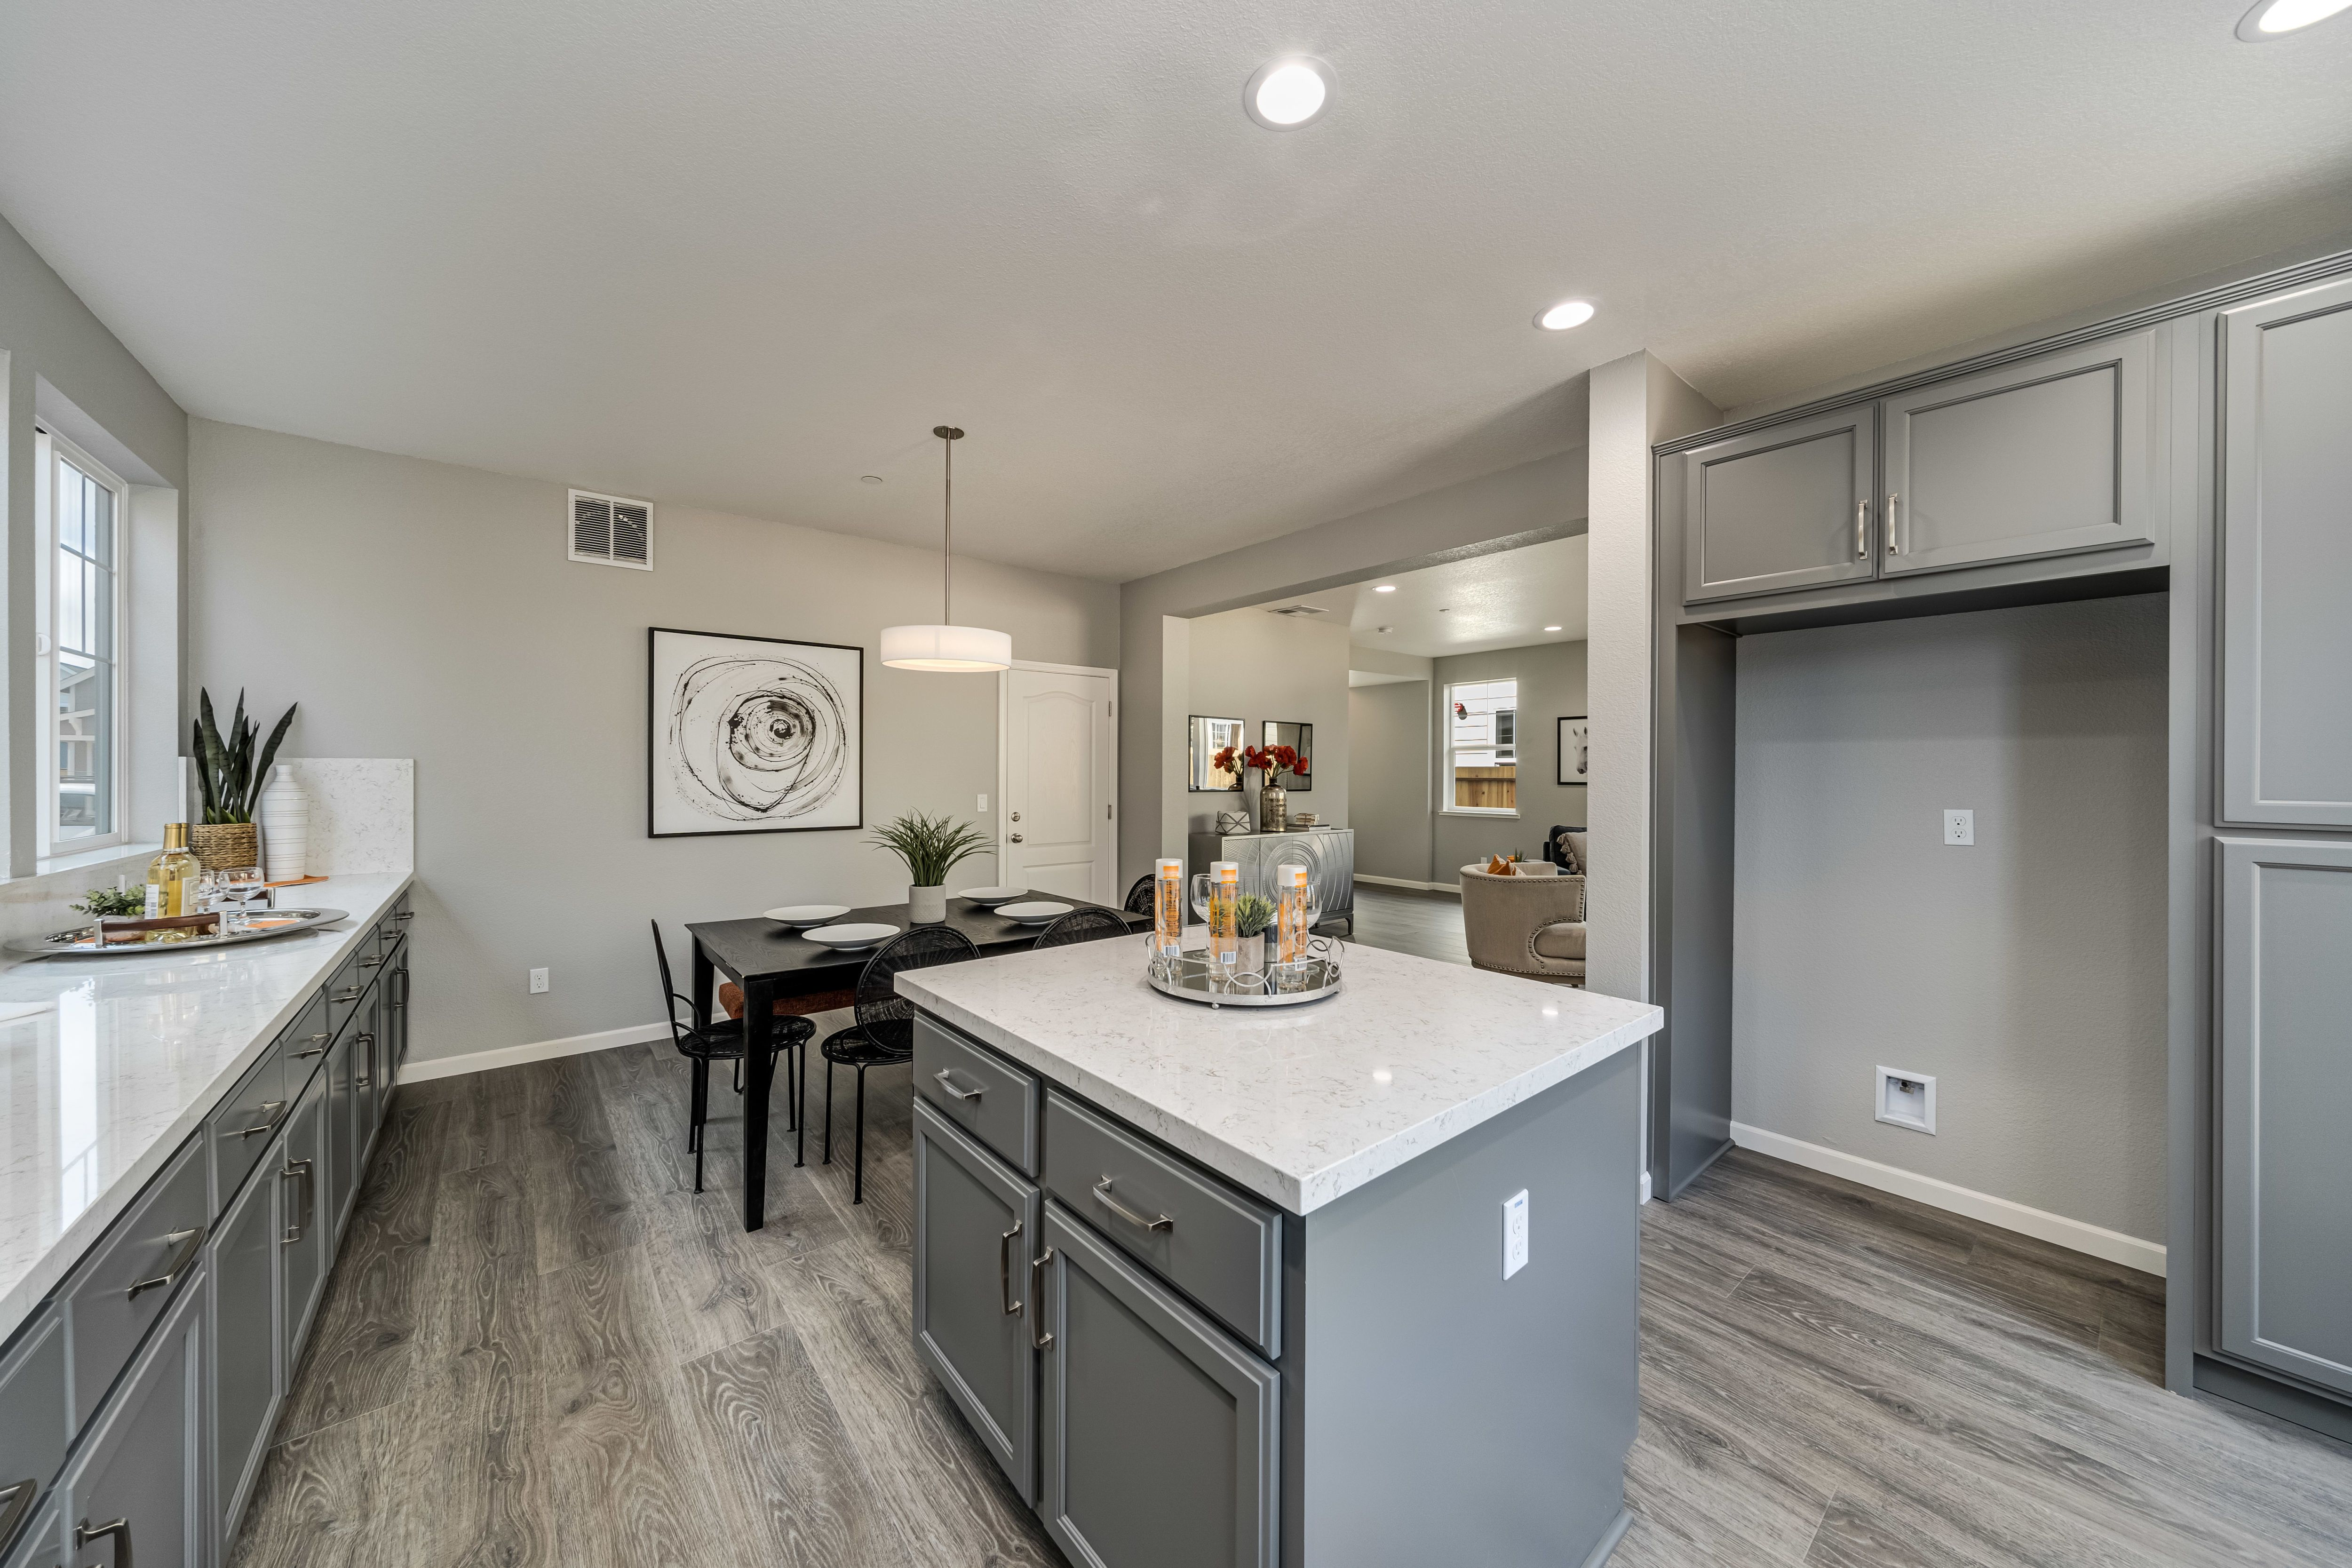 Kitchen featured in the Plan 3C By The Gardens in Santa Rosa, CA